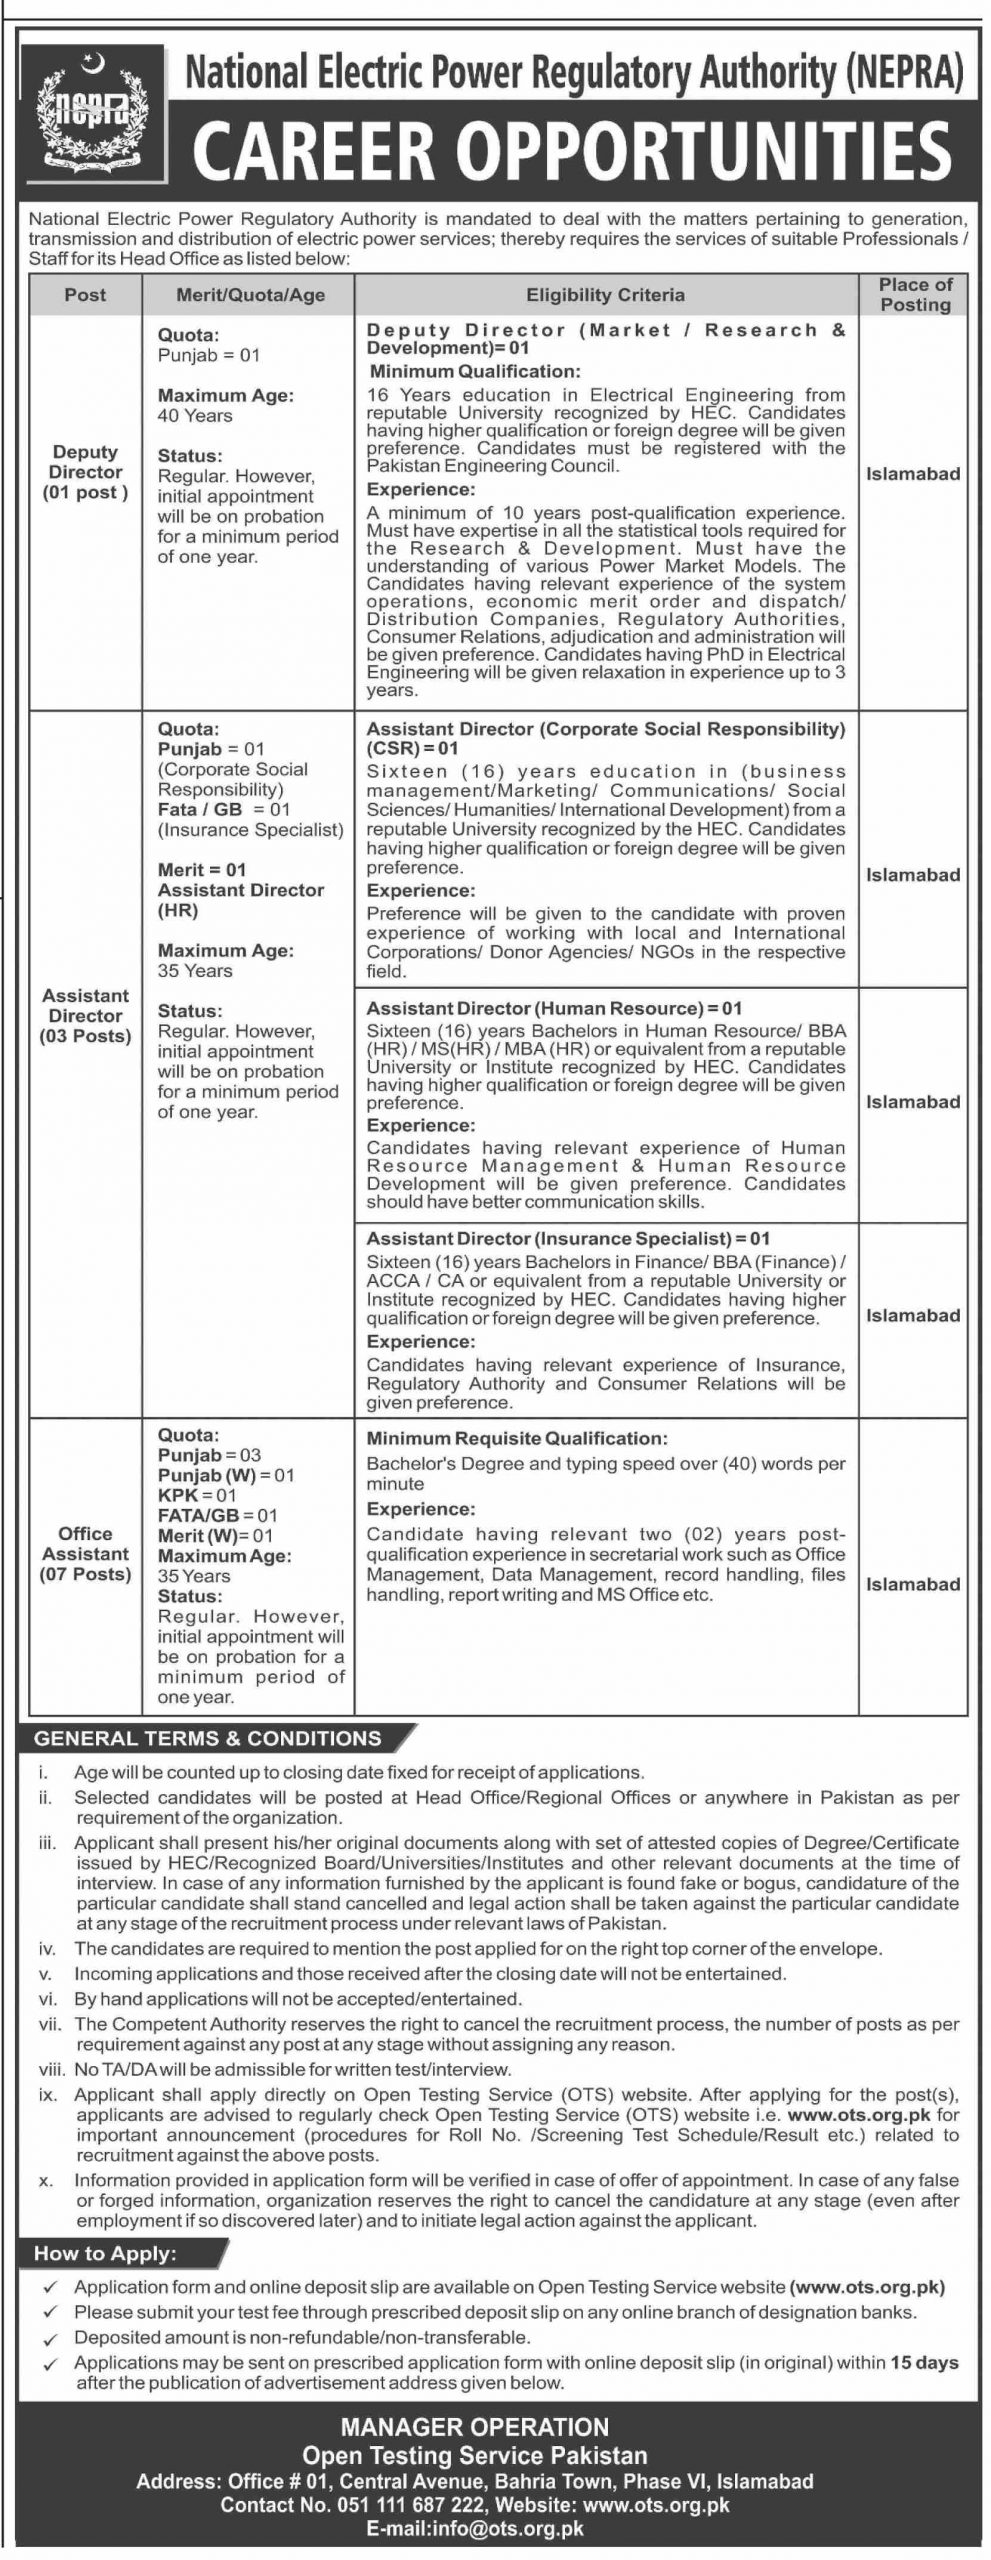 NEPRA Jobs DAWN July 2020